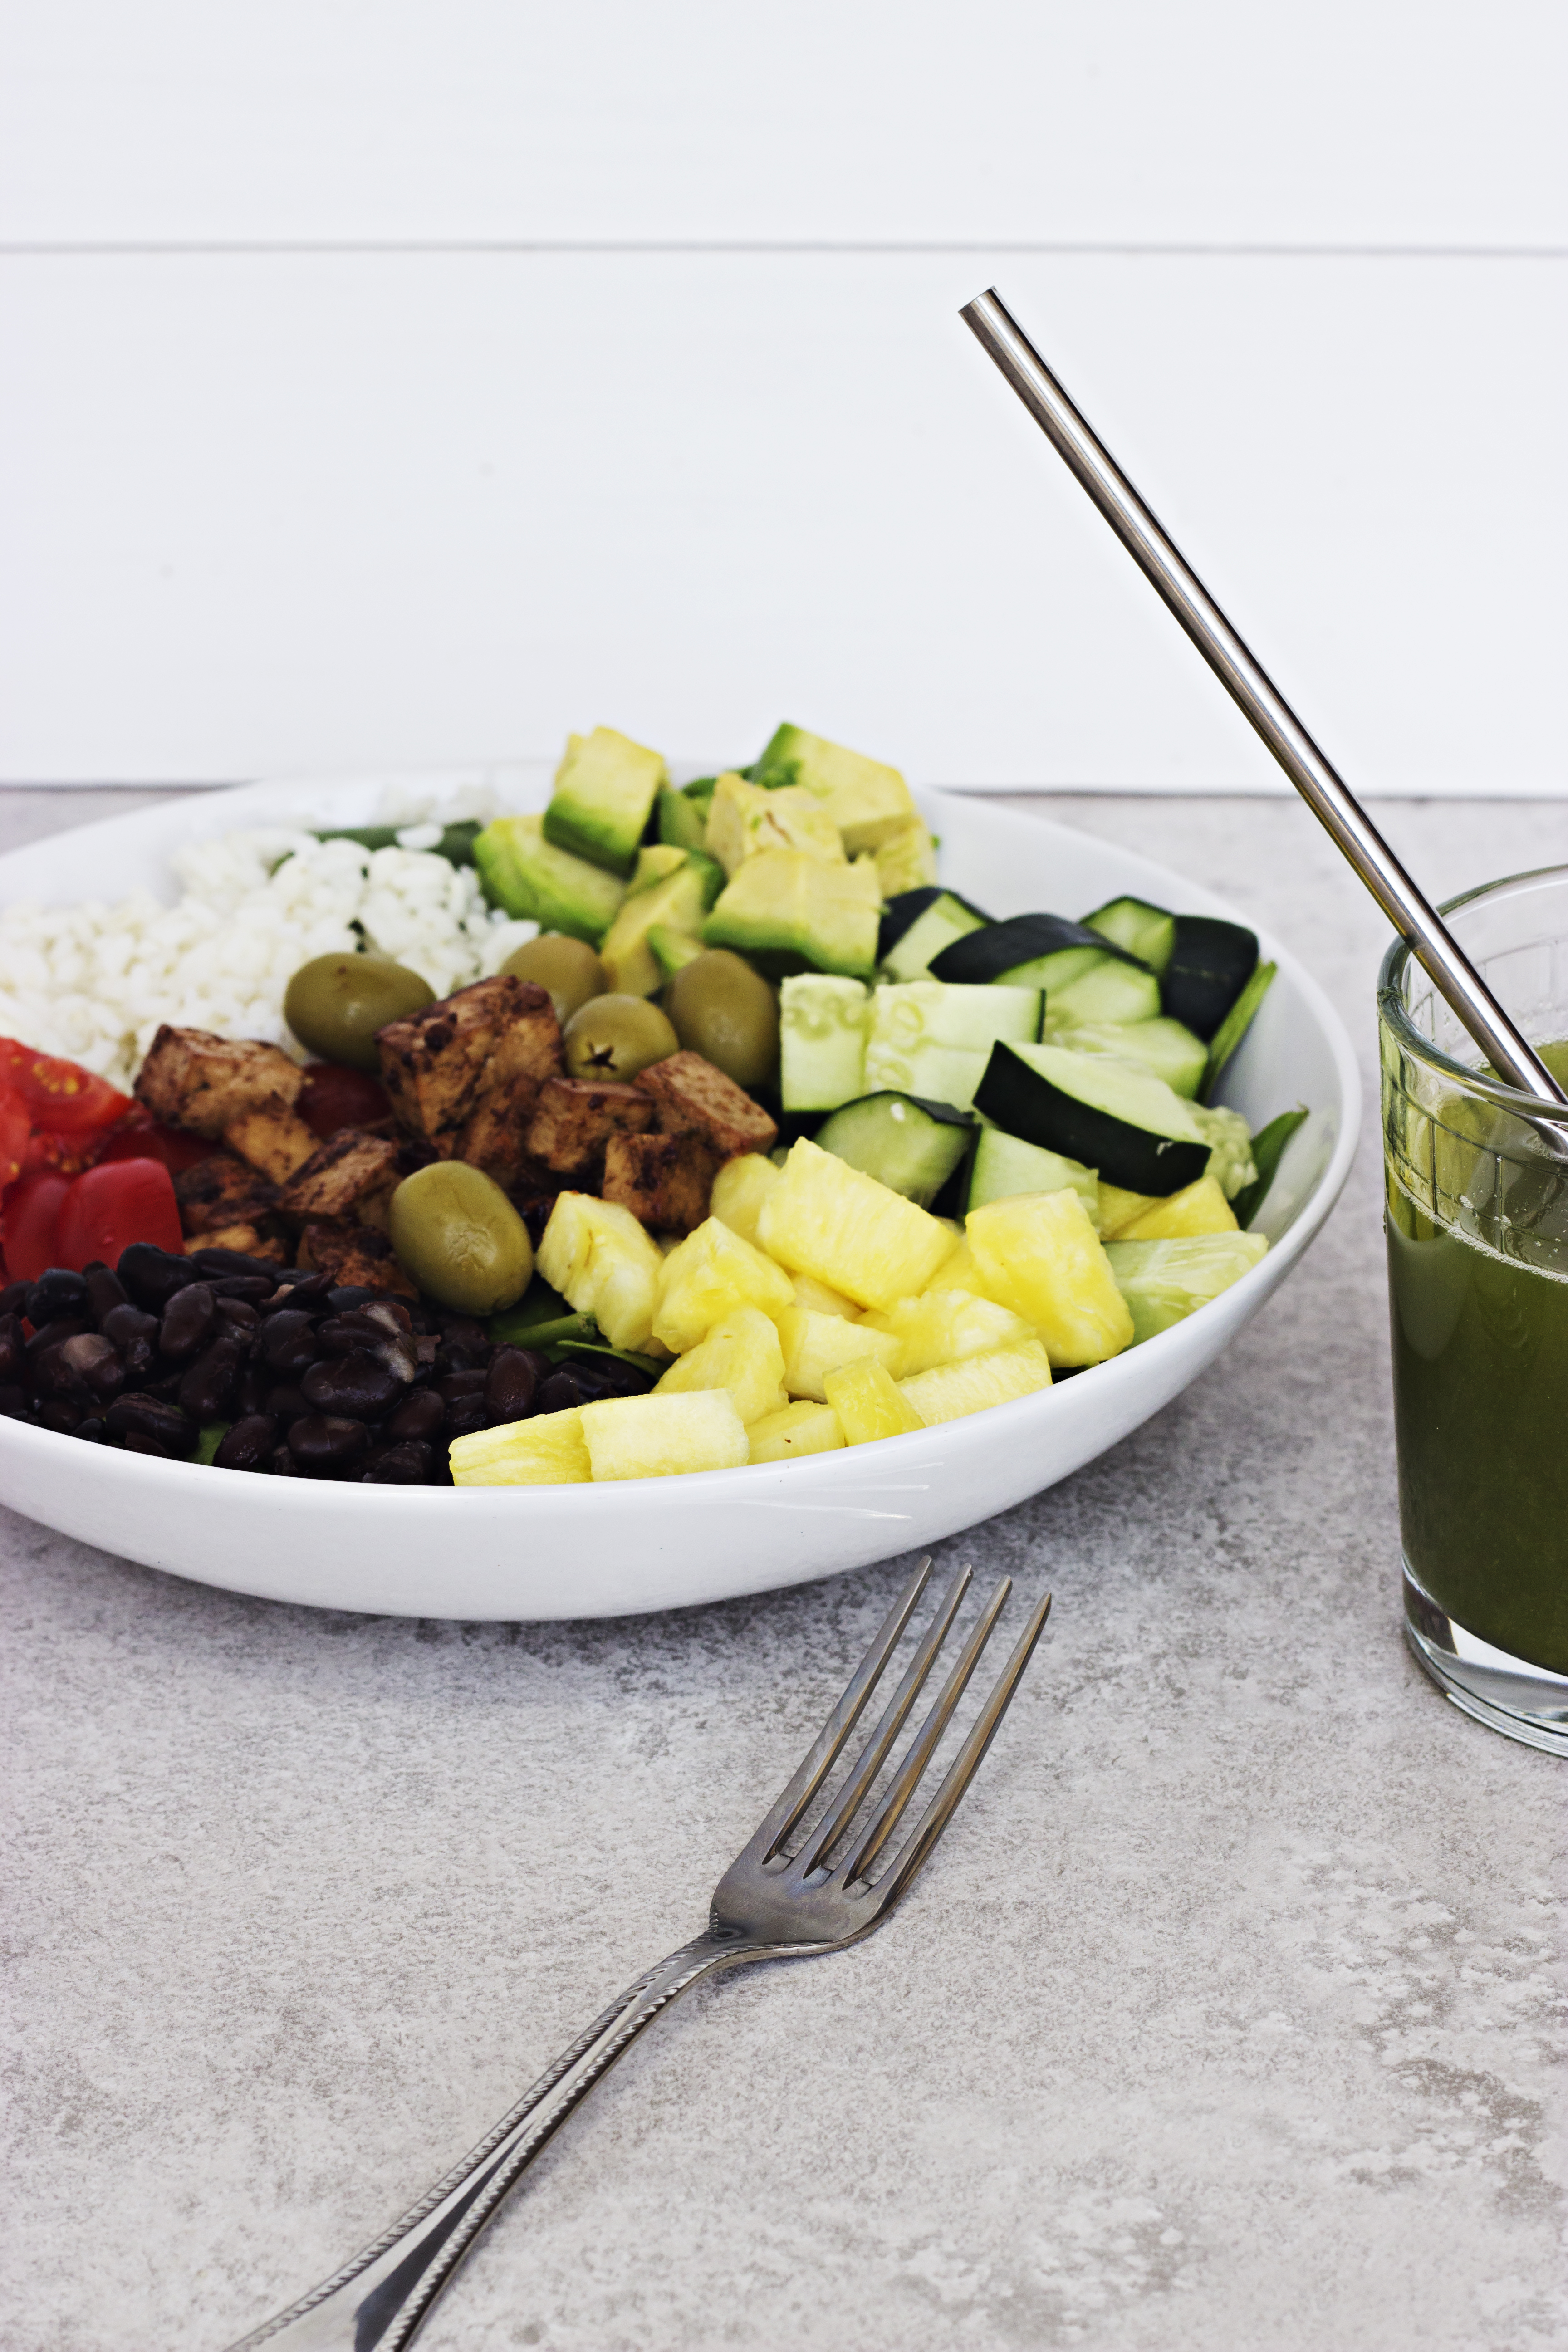 Buddha Bowl Simples / Simple Buddha Bowl